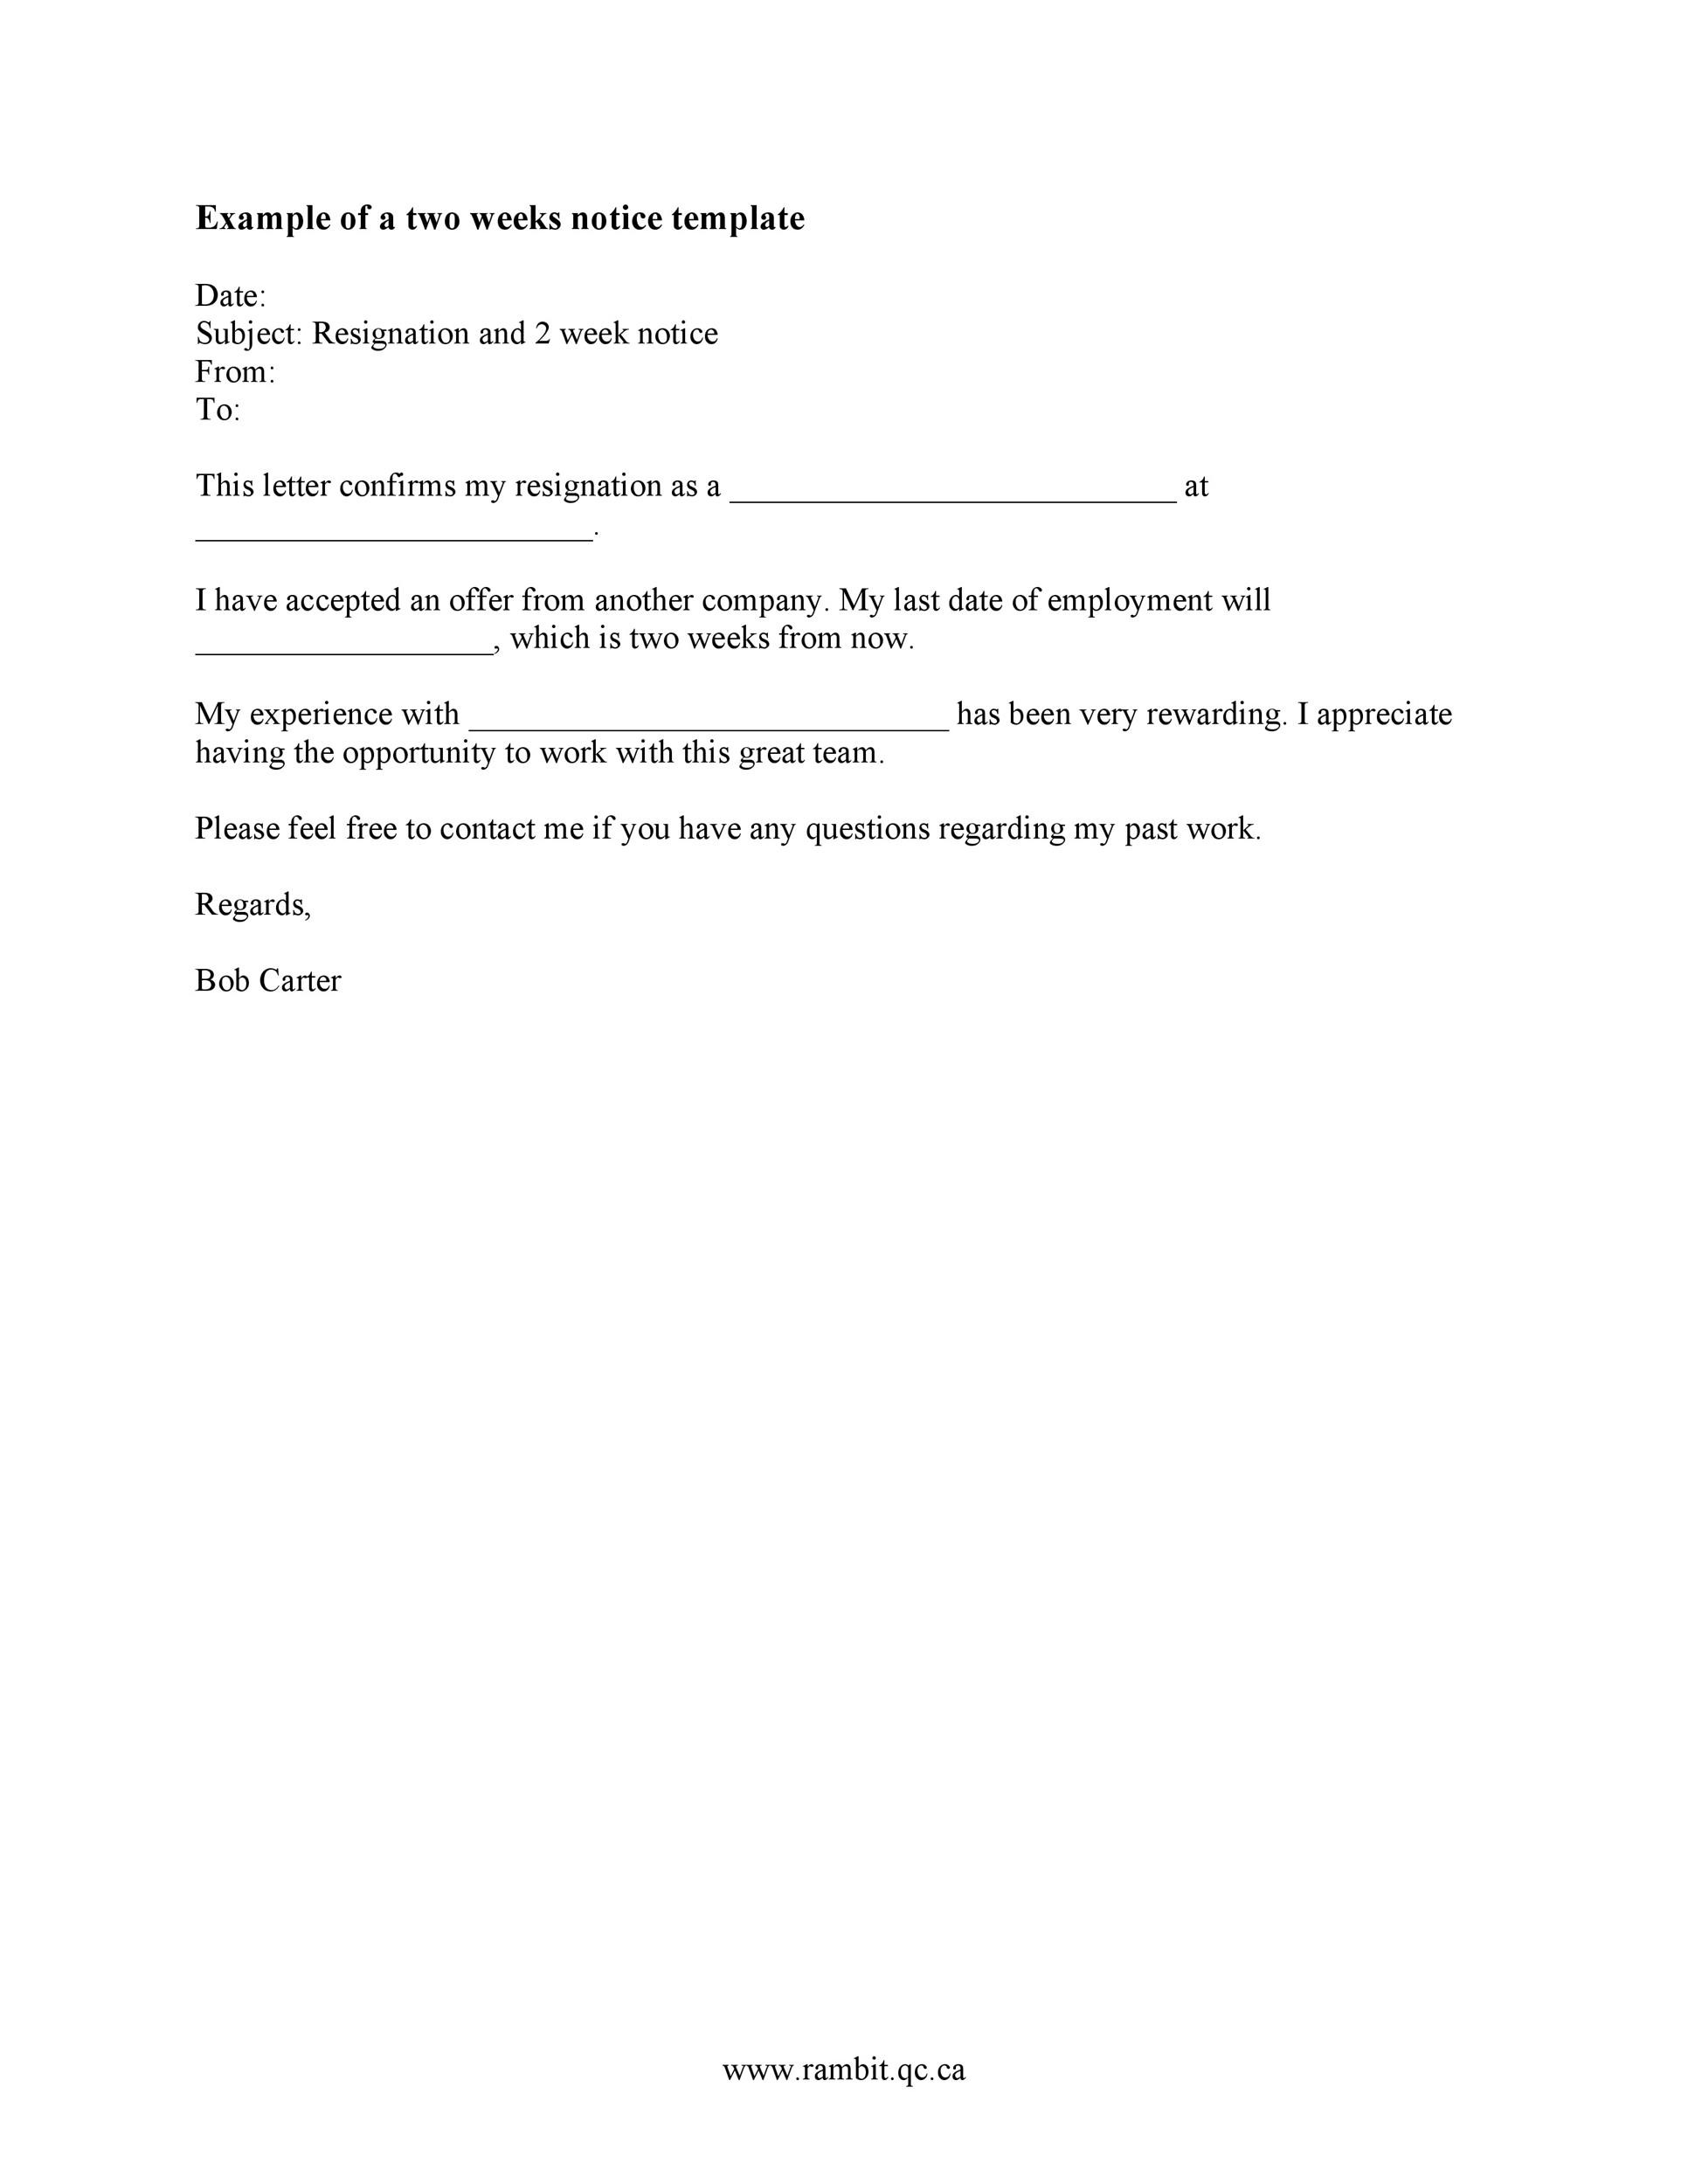 How to Write a Perfect Two Weeks Notice Email